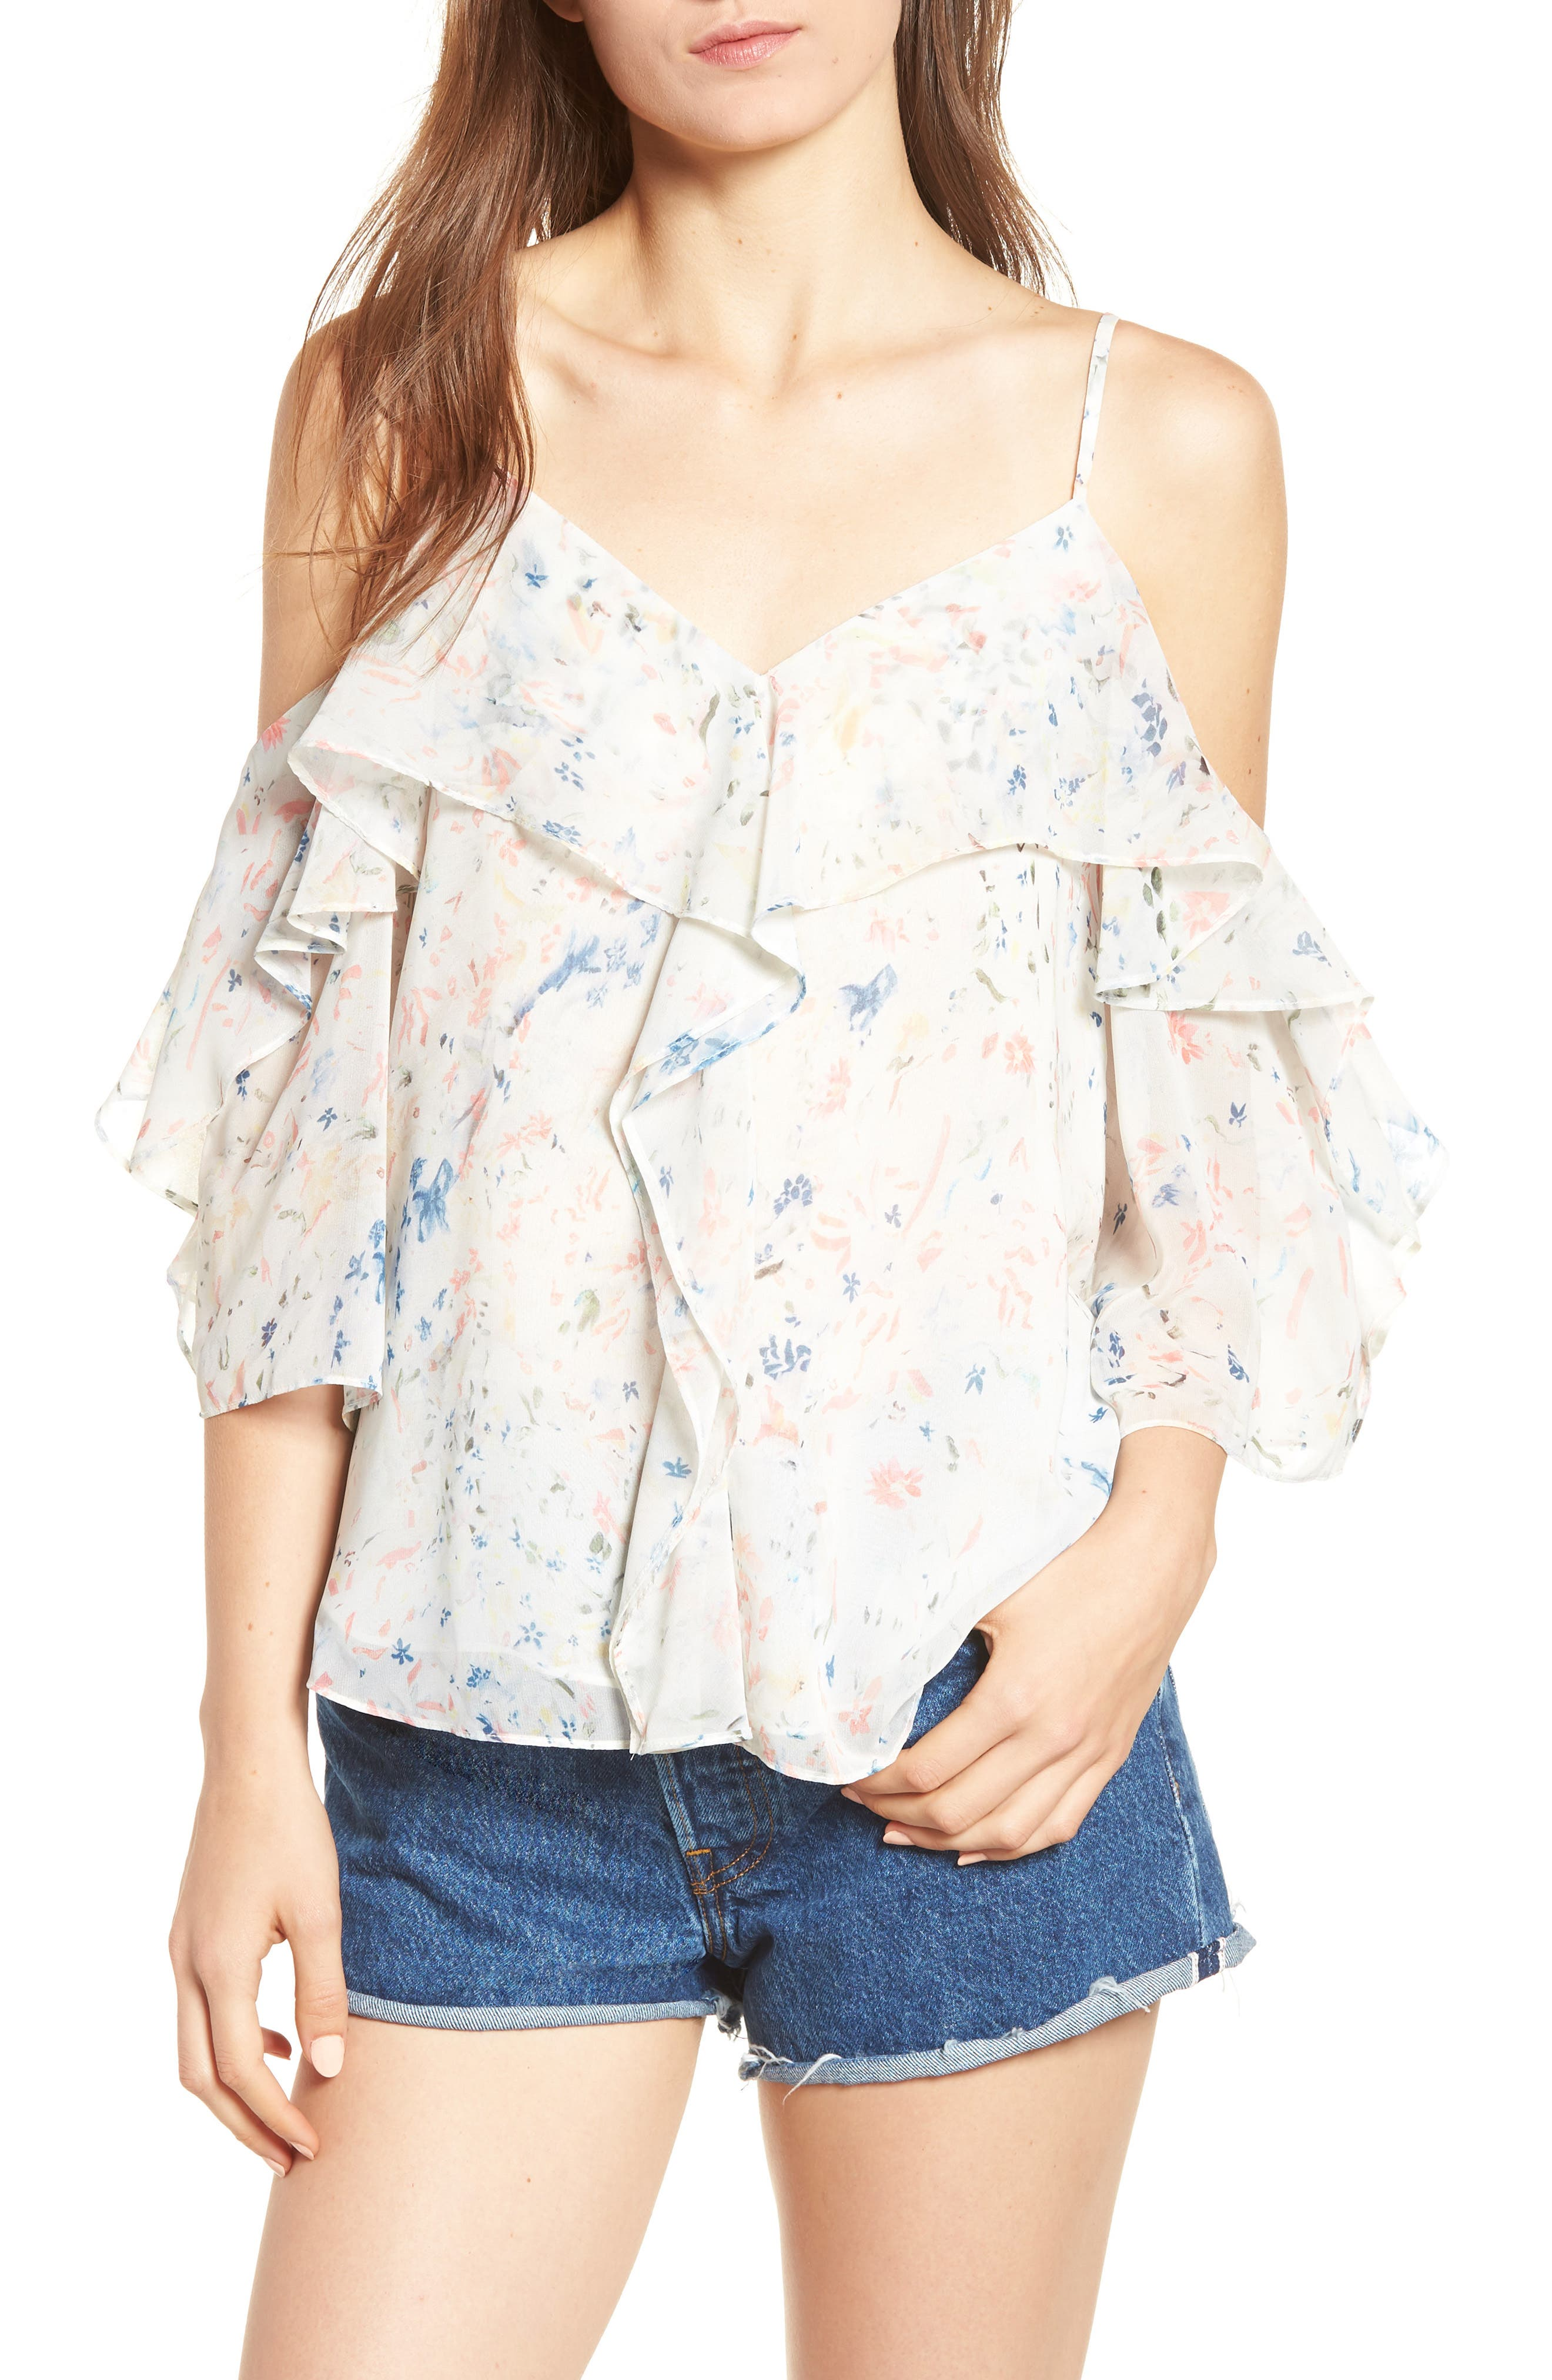 Jasmine Juni Top,                         Main,                         color, Chalk White